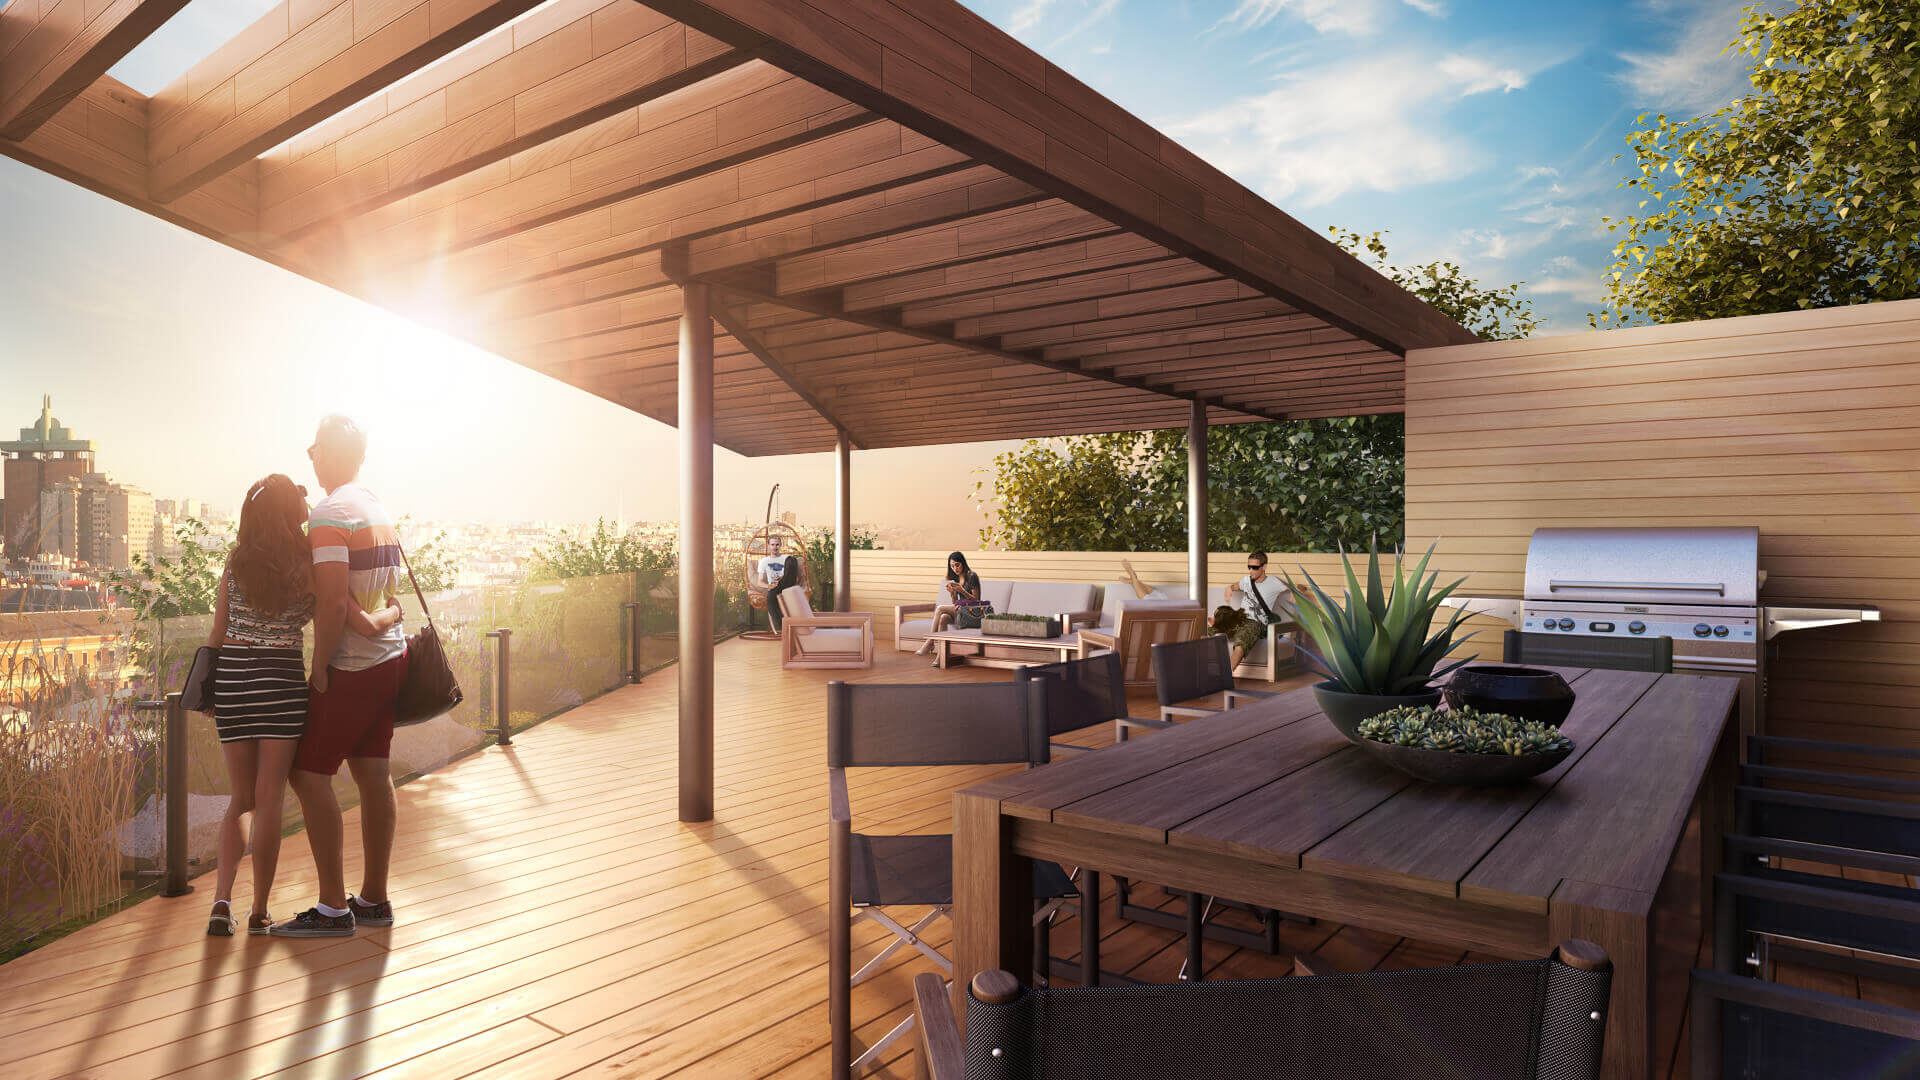 3D Visualization of a Spacious Summer Terrace